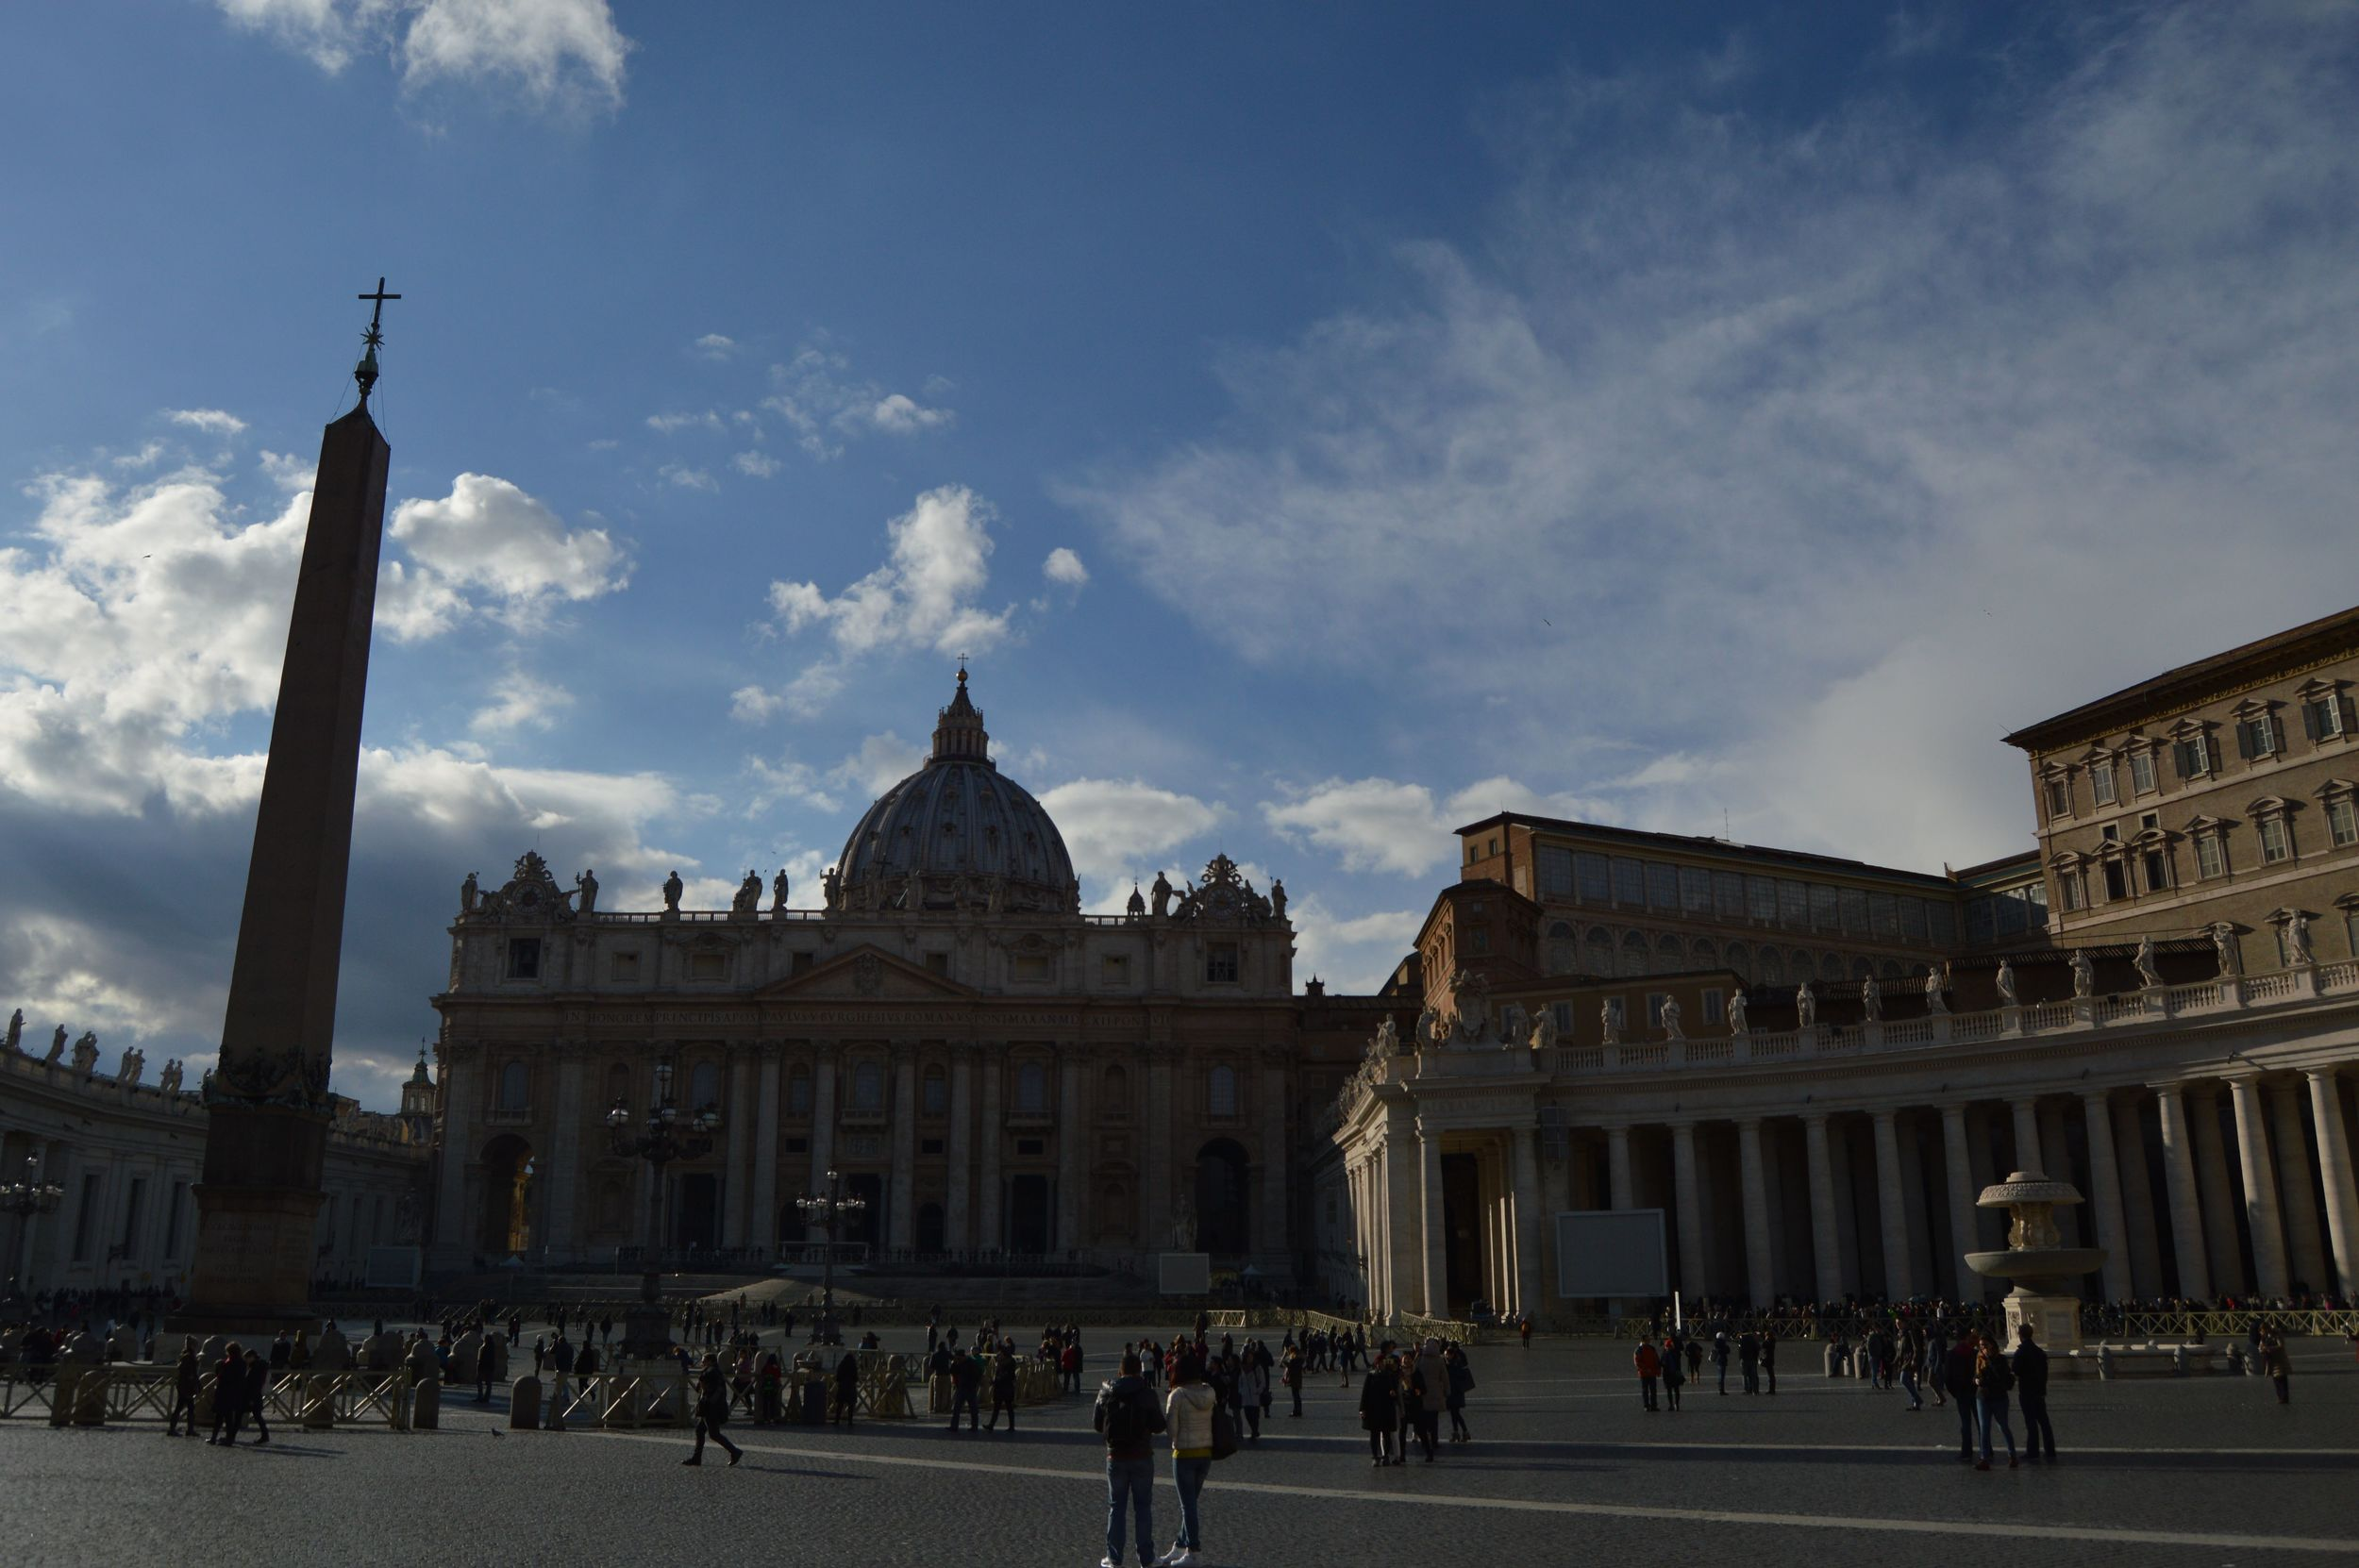 St. Peter's Basilica/Square. One of my favorite parts and what I originally thought was the main event at the Vatican. Photo by Max Siskind.